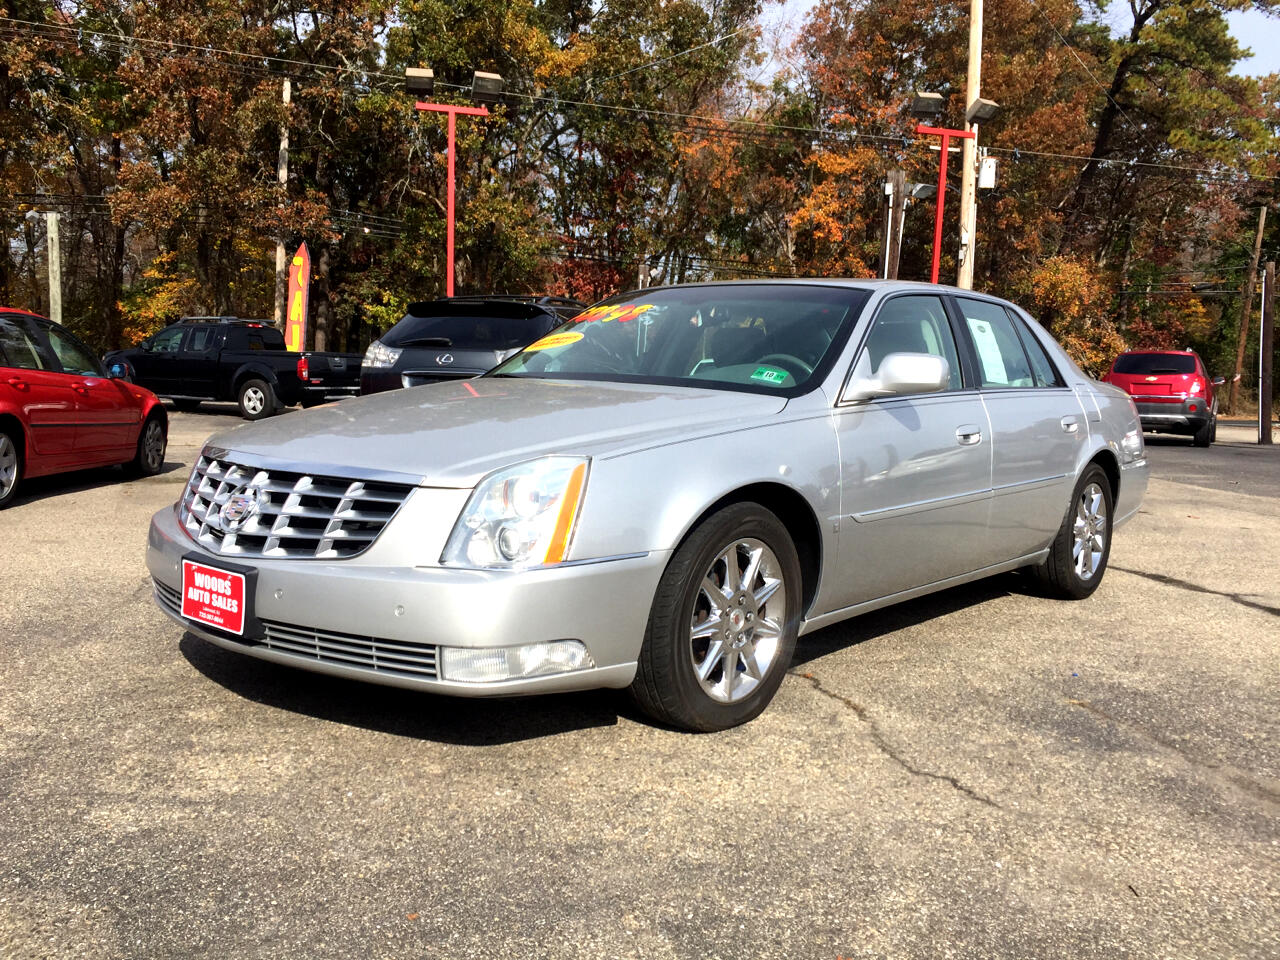 Cadillac DTS 4dr Sdn Luxury I 2010